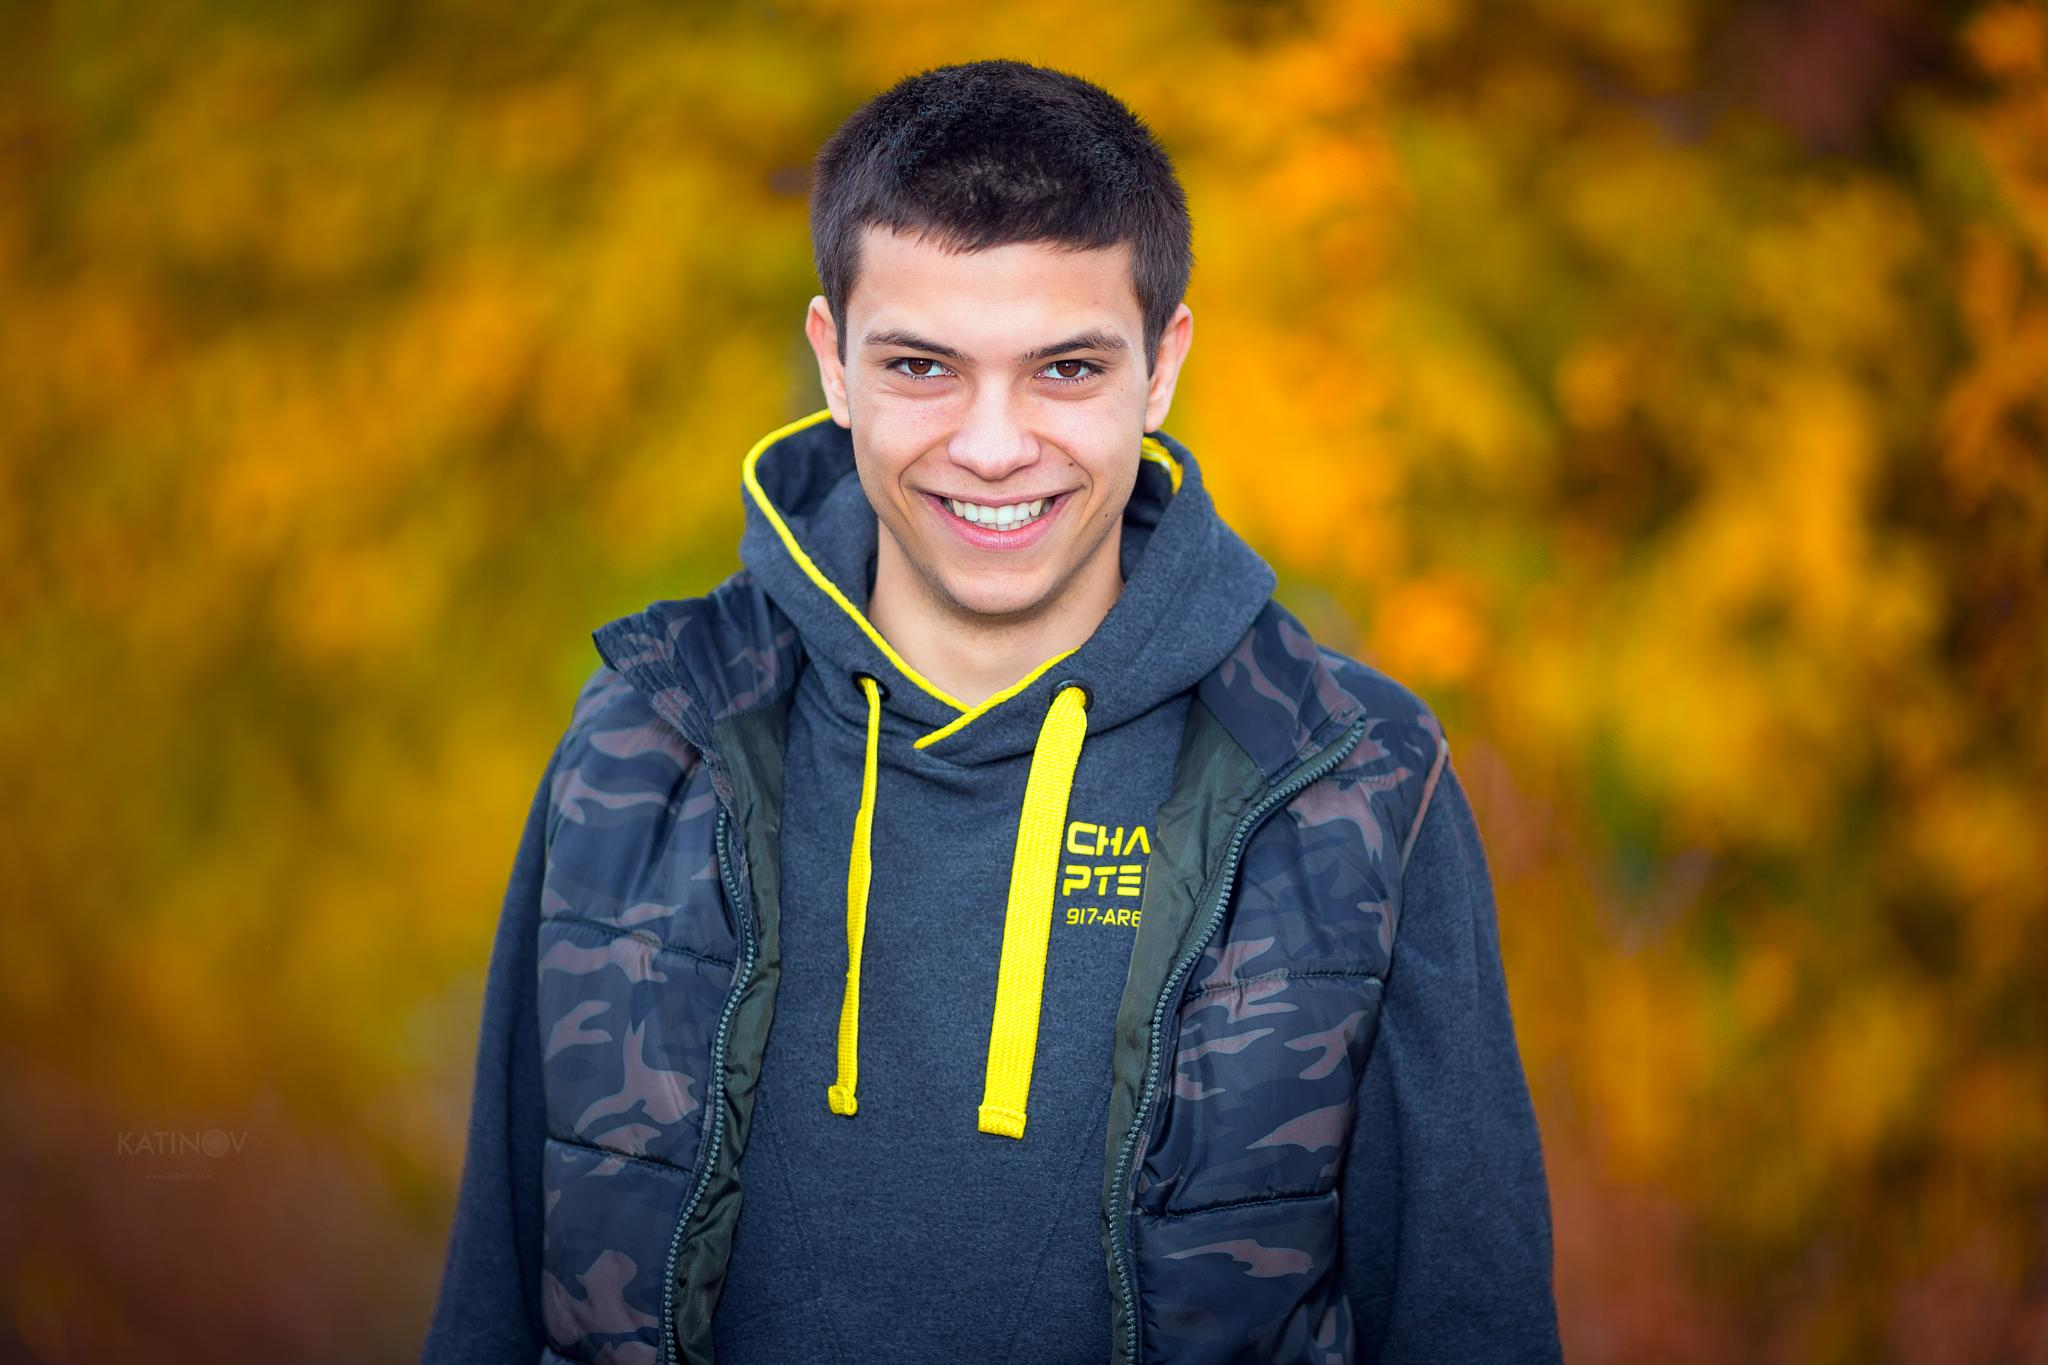 Handsome teenager portrait by Stoyan Katinov